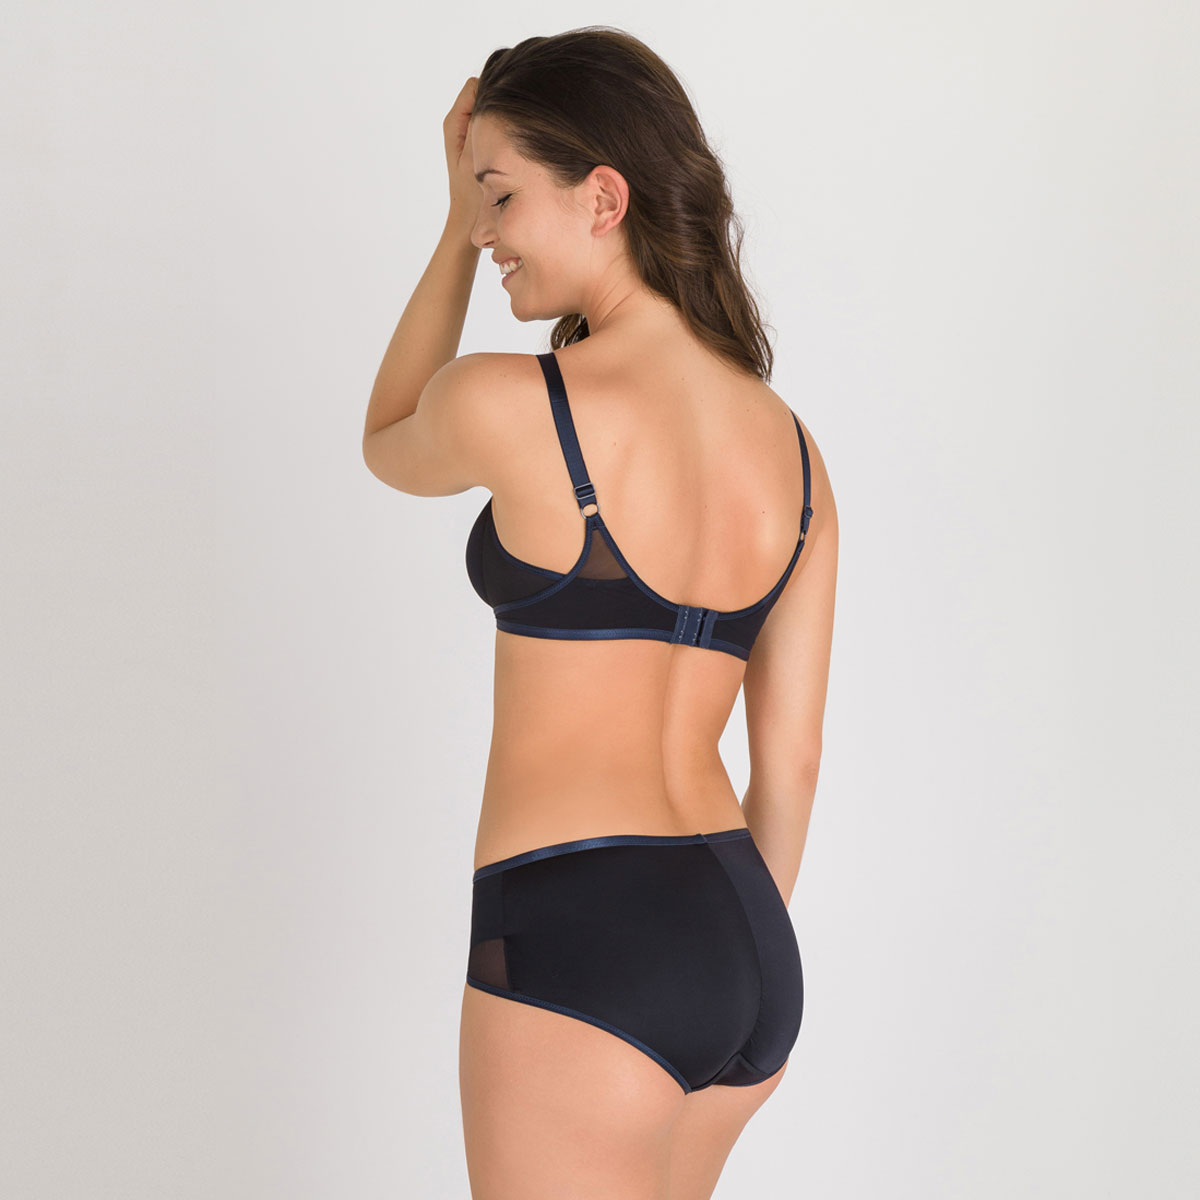 Soutien-gorge sans armatures noir - Ideal Beauty-PLAYTEX